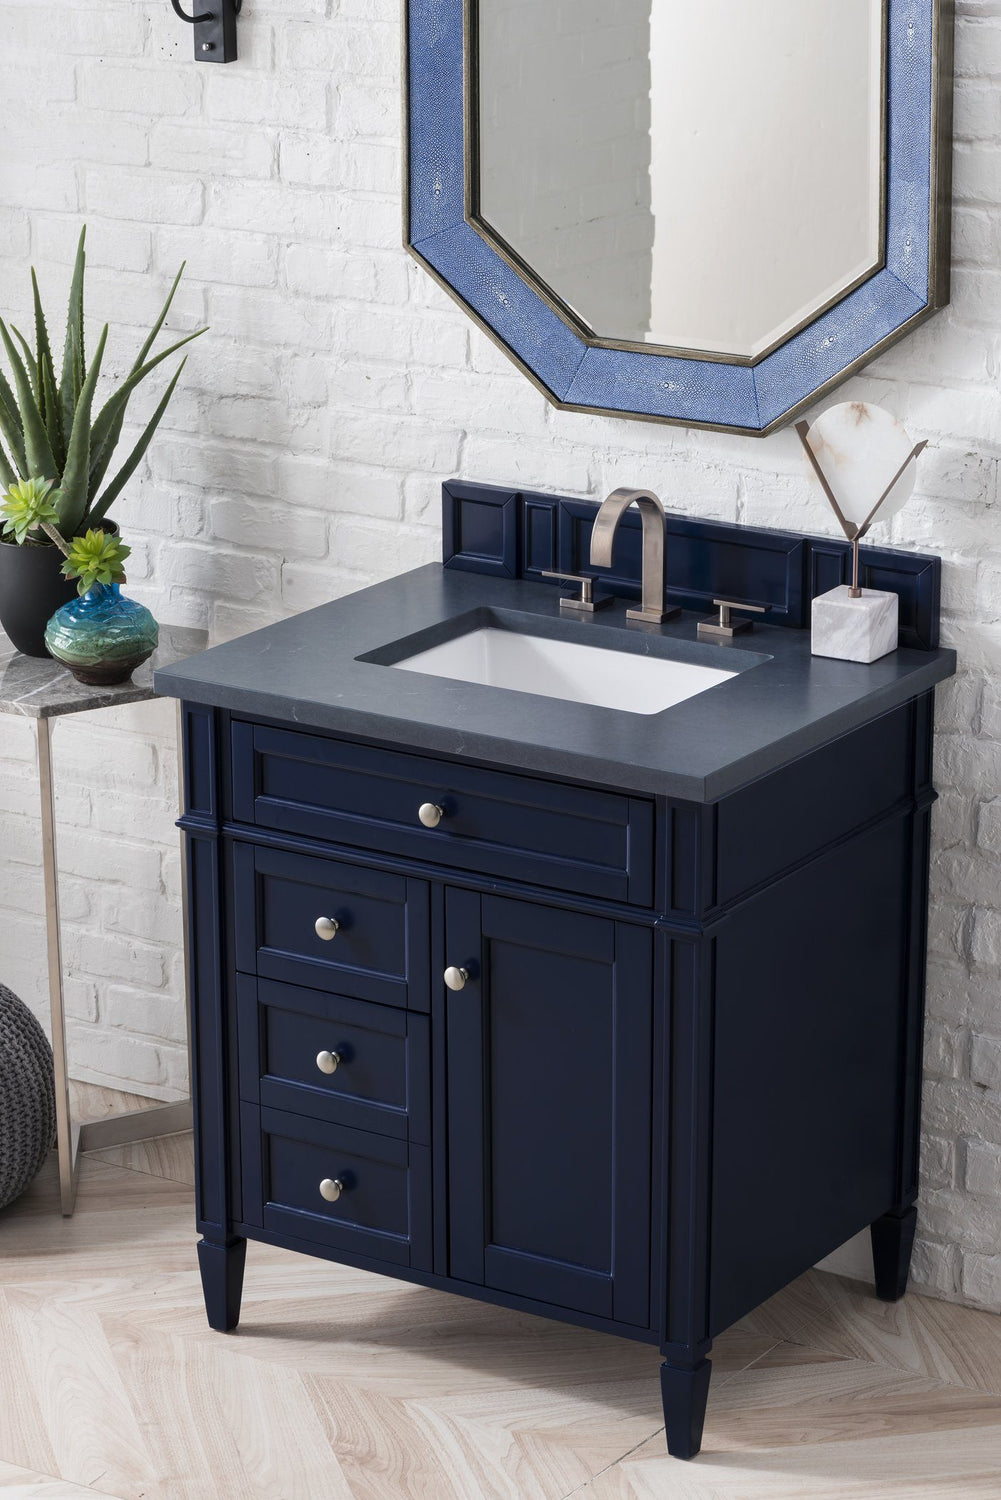 30 Quot Brittany Single Bathroom Vanity Victory Blue